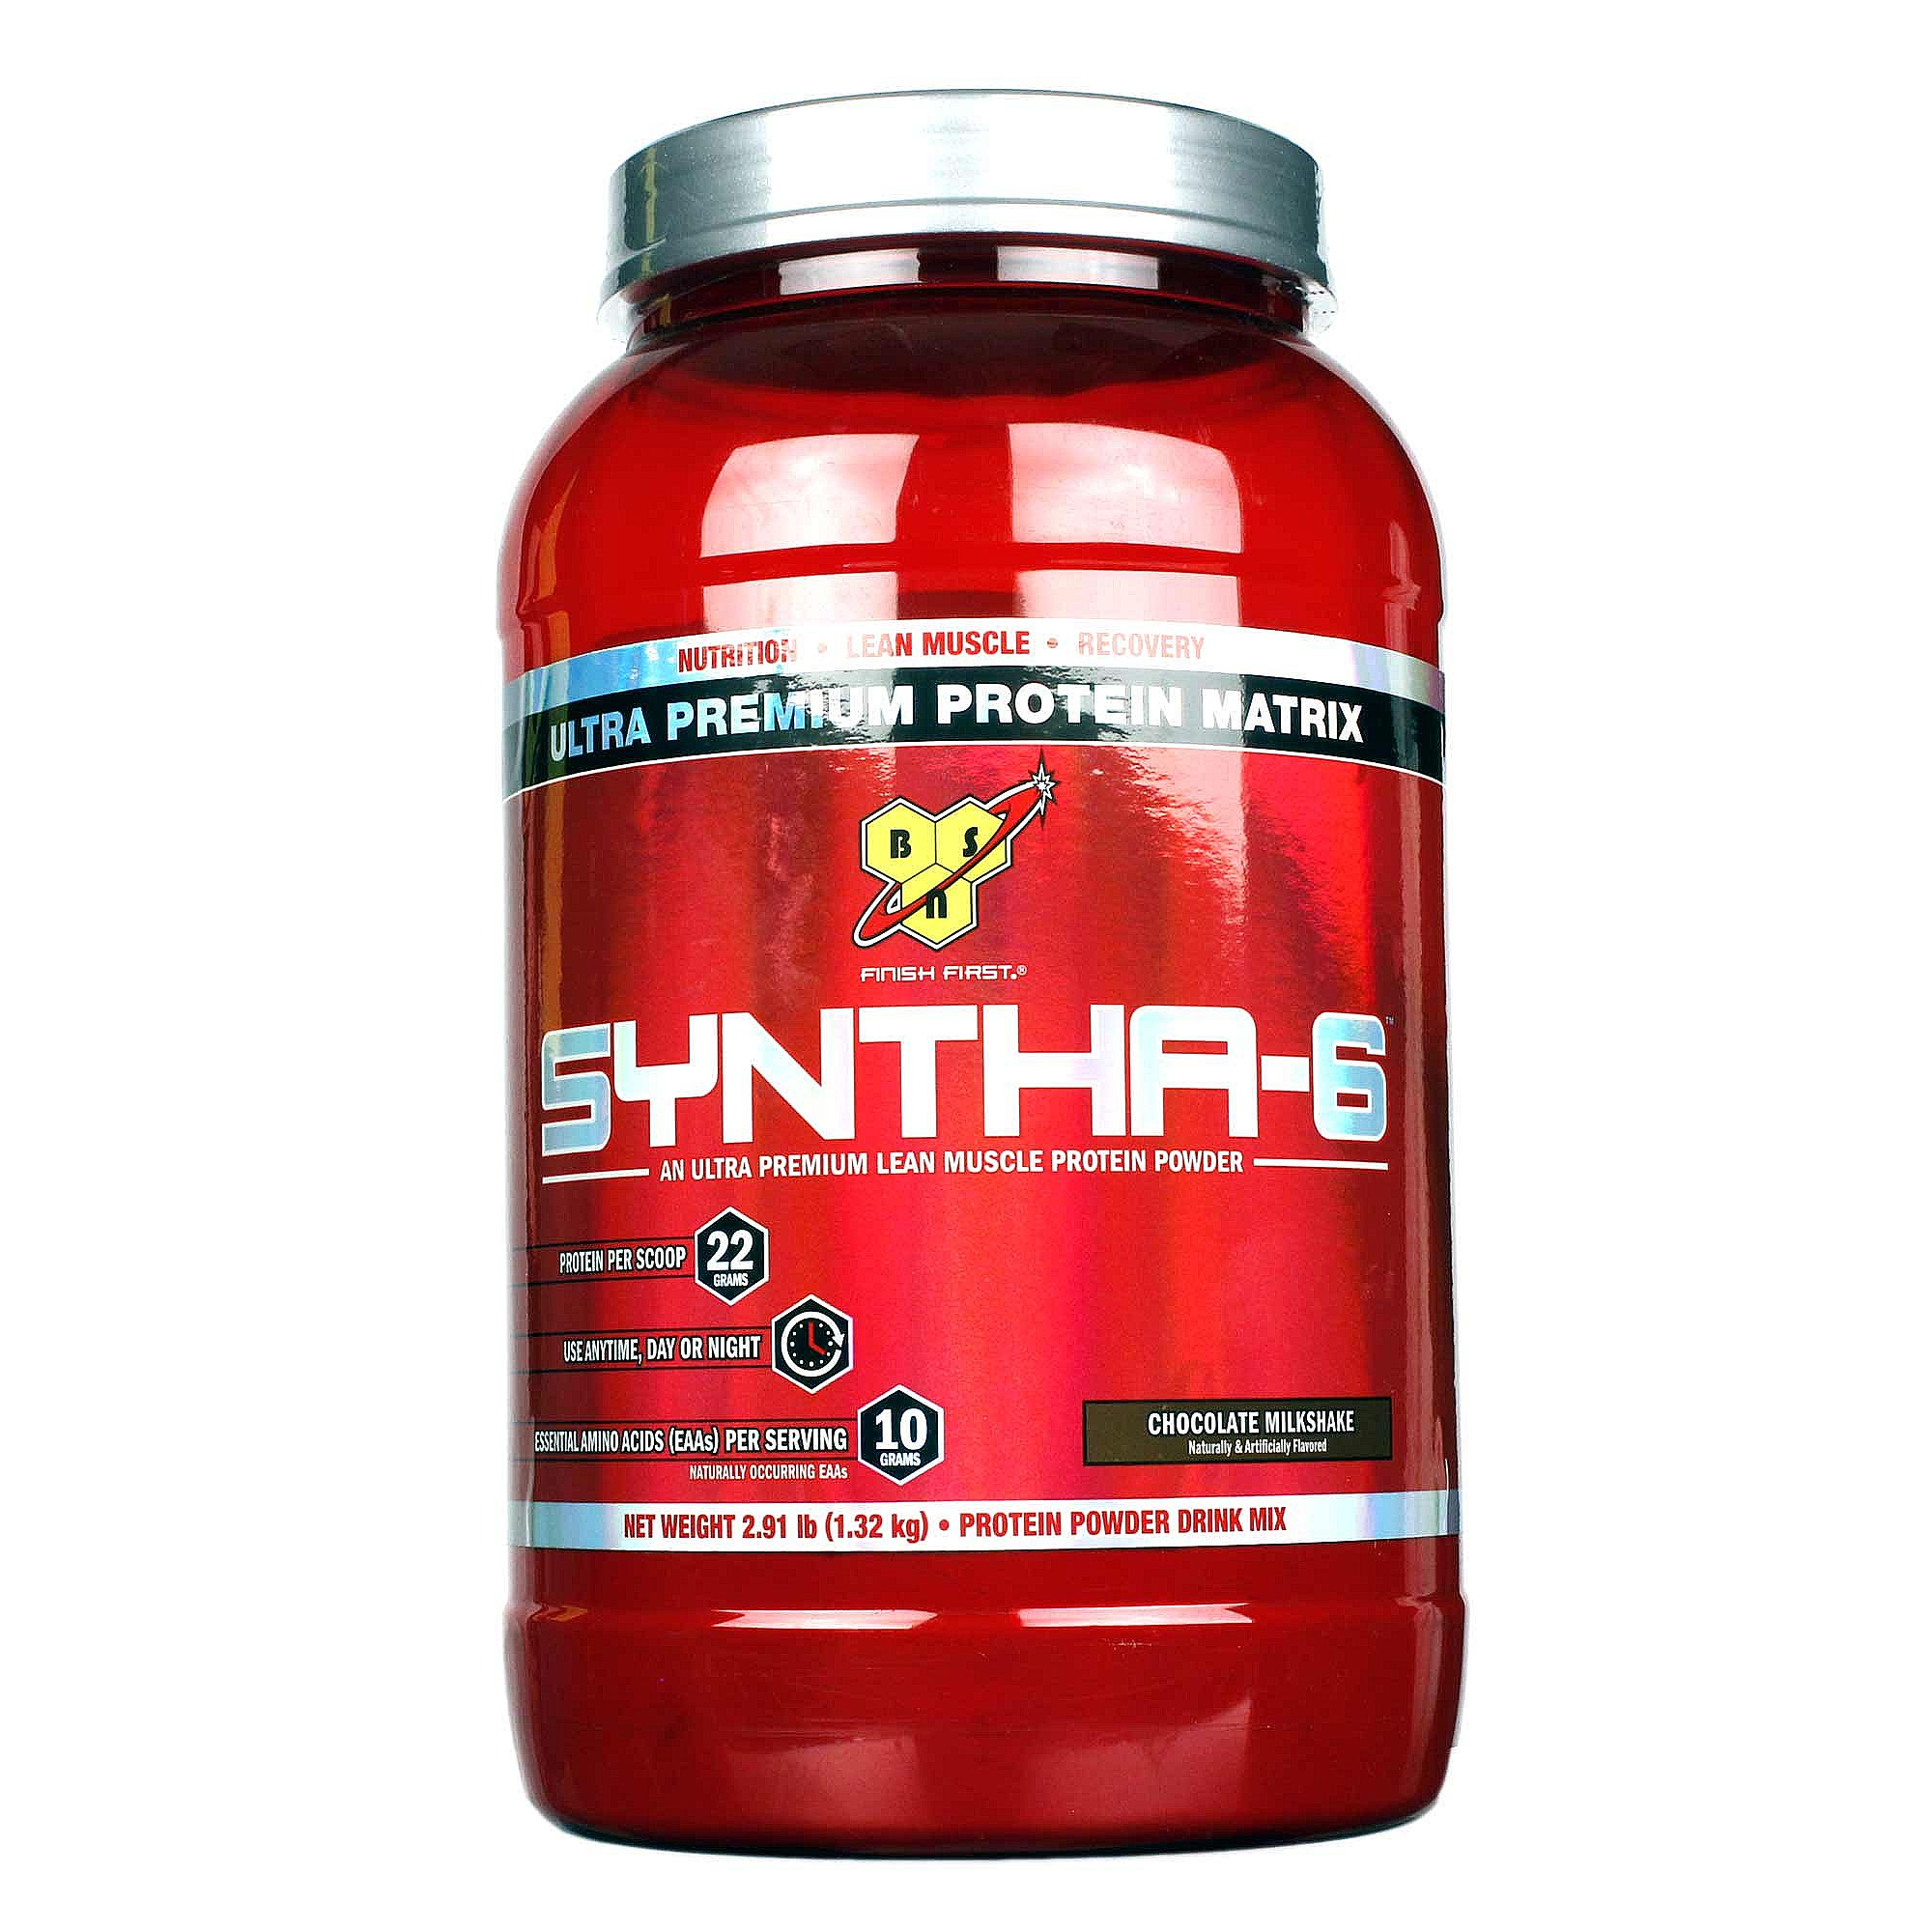 Bsn syntha 6 protein powder 2.91 pound